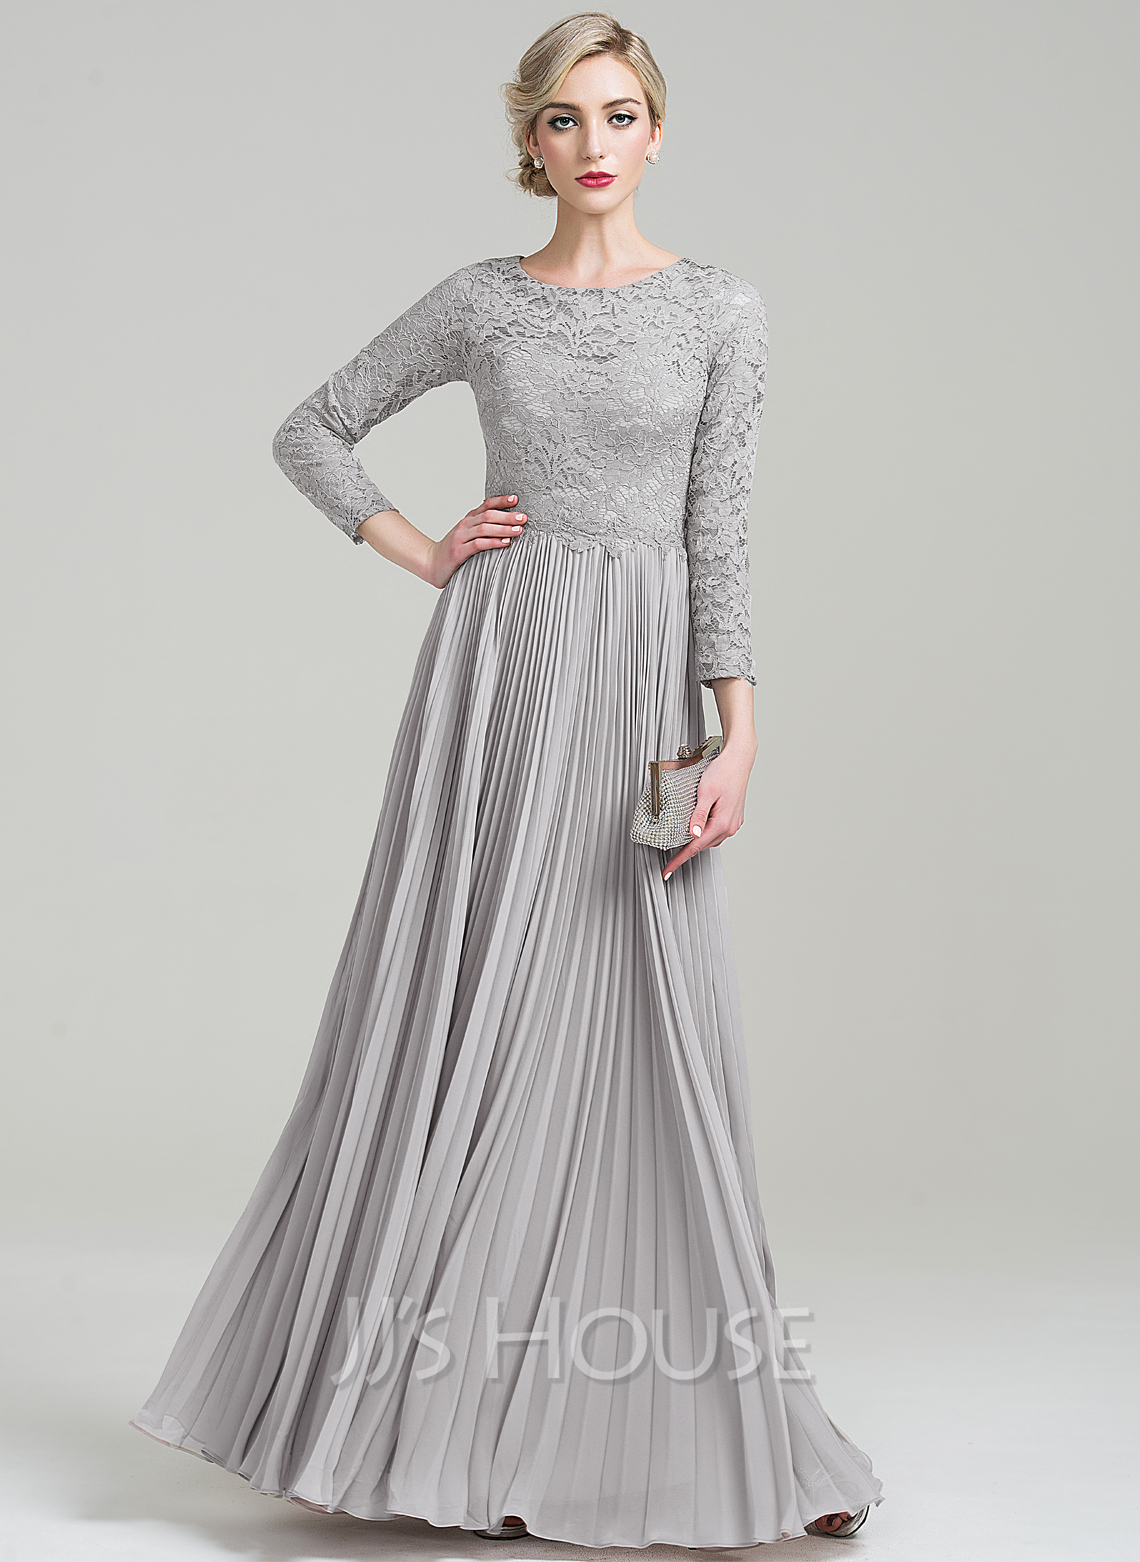 Scoop Neck Floor-Length Chiffon Lace Mother of the Bride Dress With Pleated